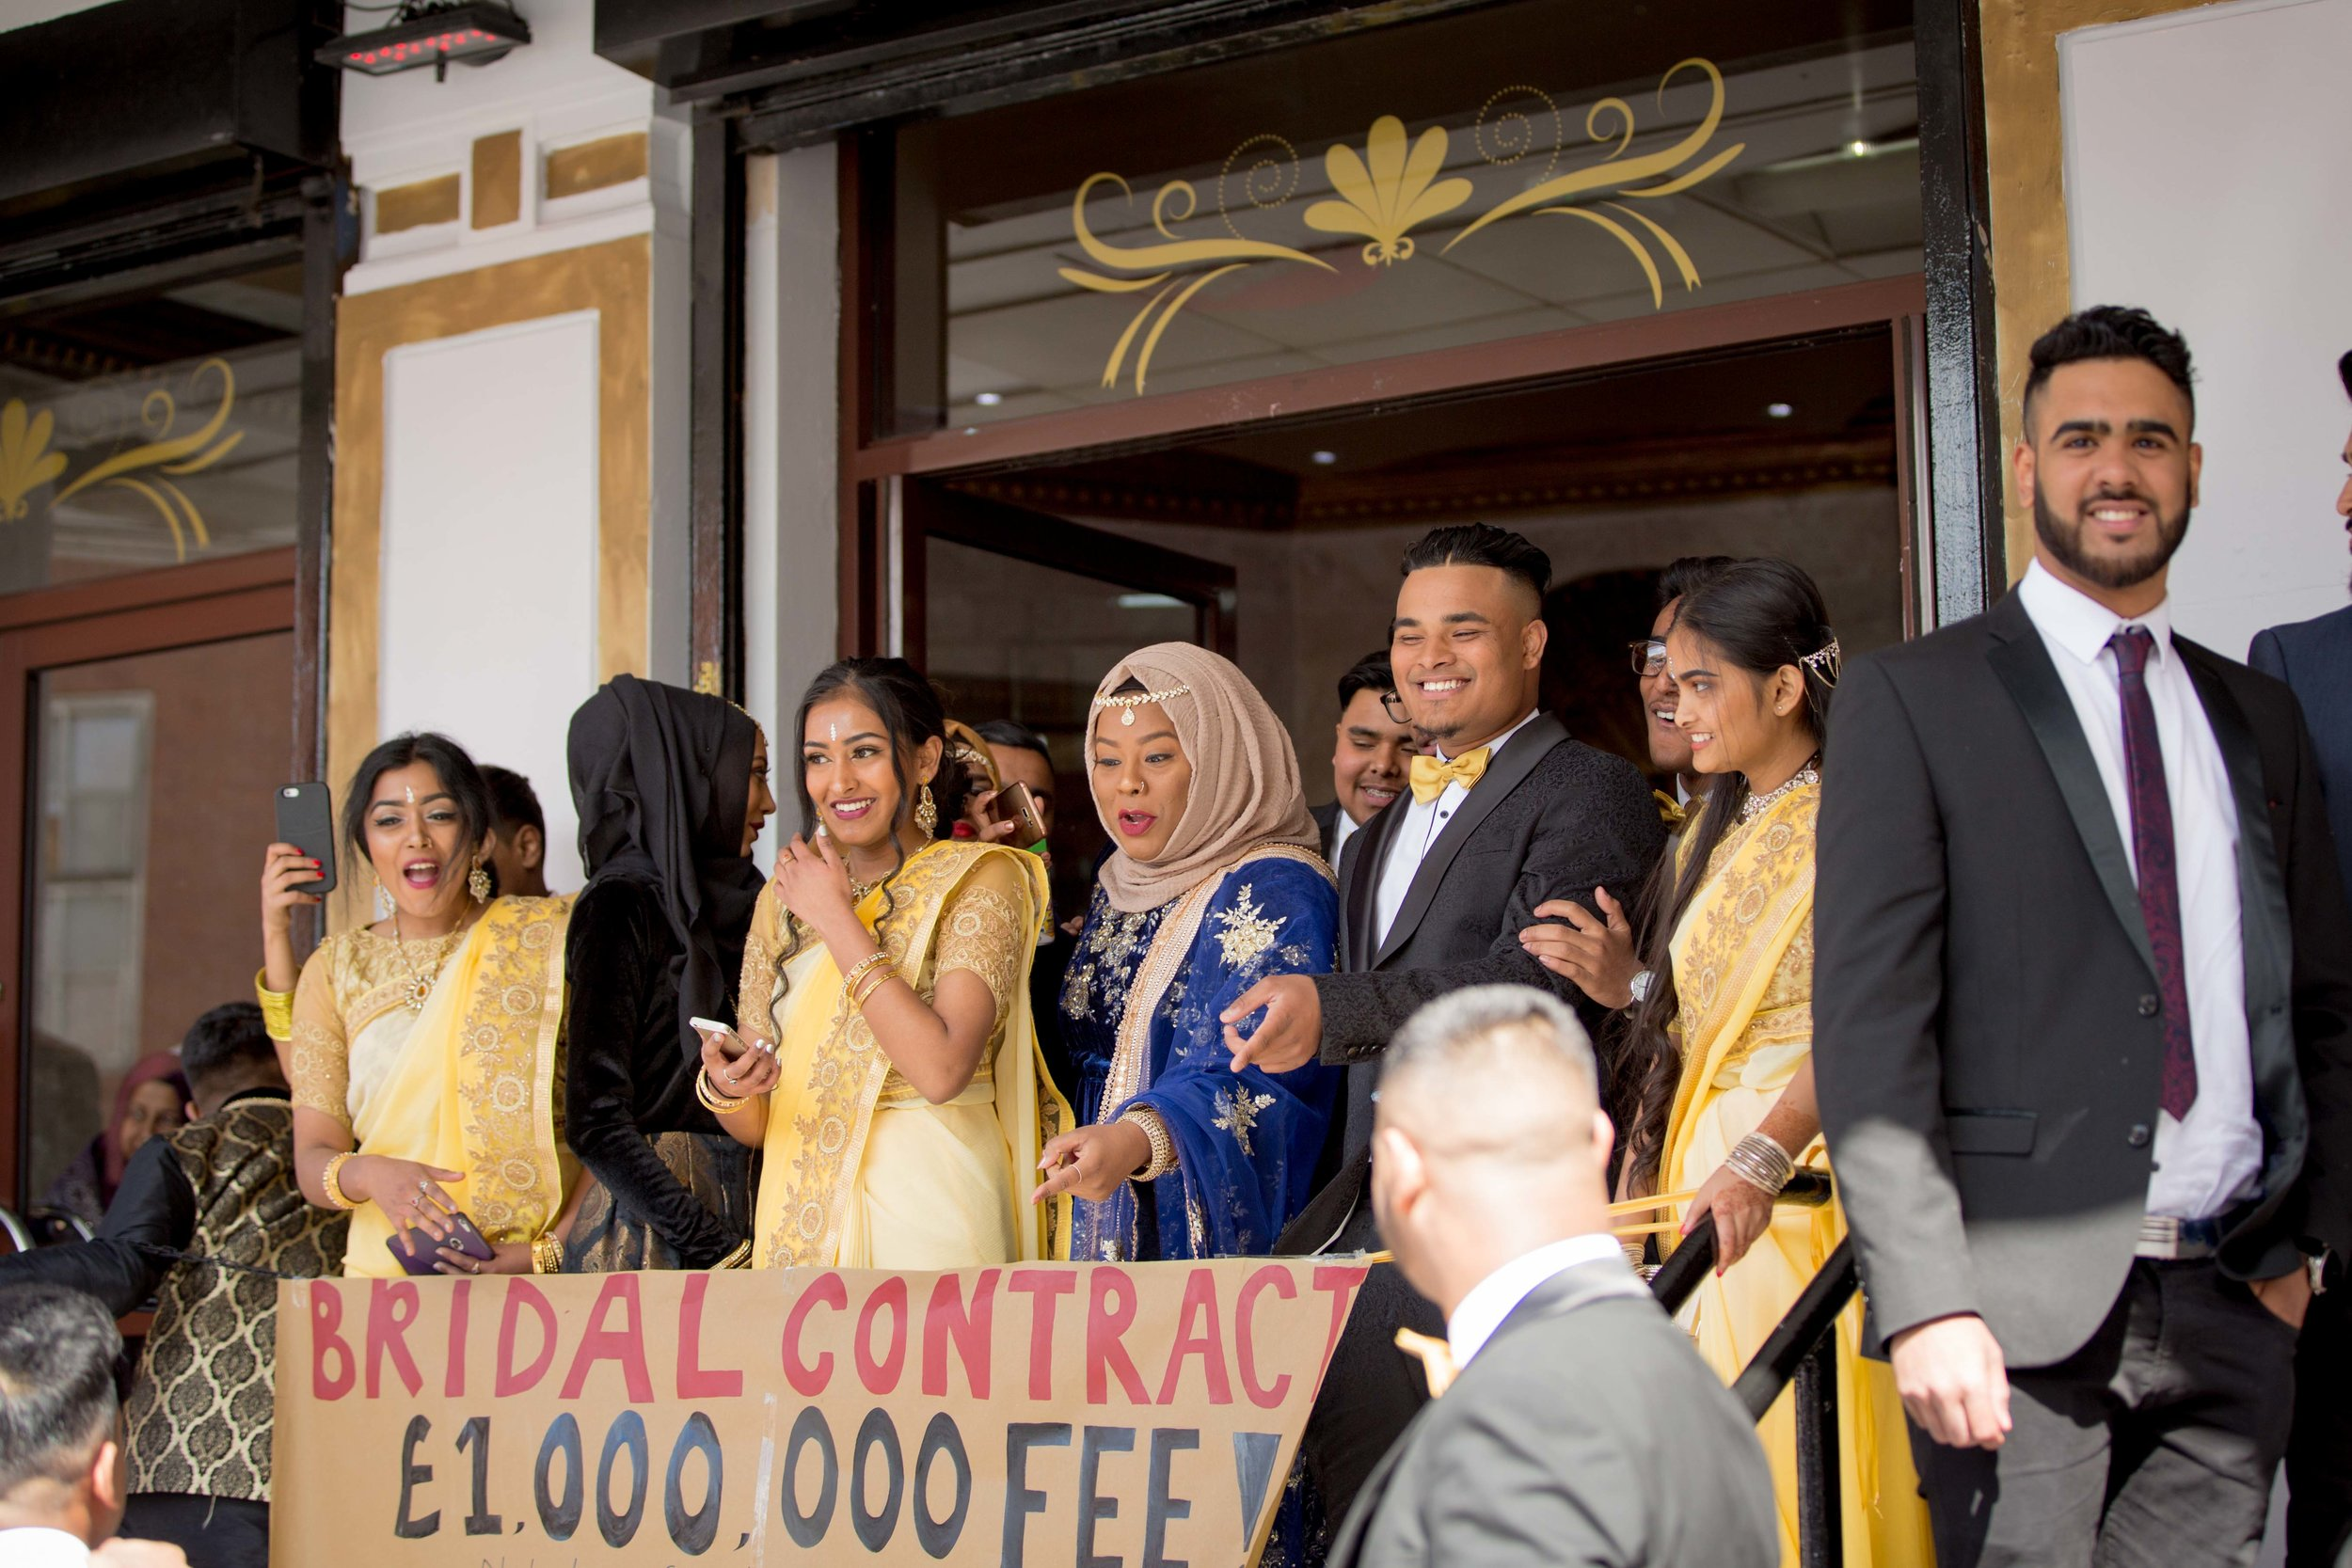 Female-Asian-Piccadilly-banqueting-suite-Wedding-Photographer-Birmingham-natalia-smith-photography-12.jpg